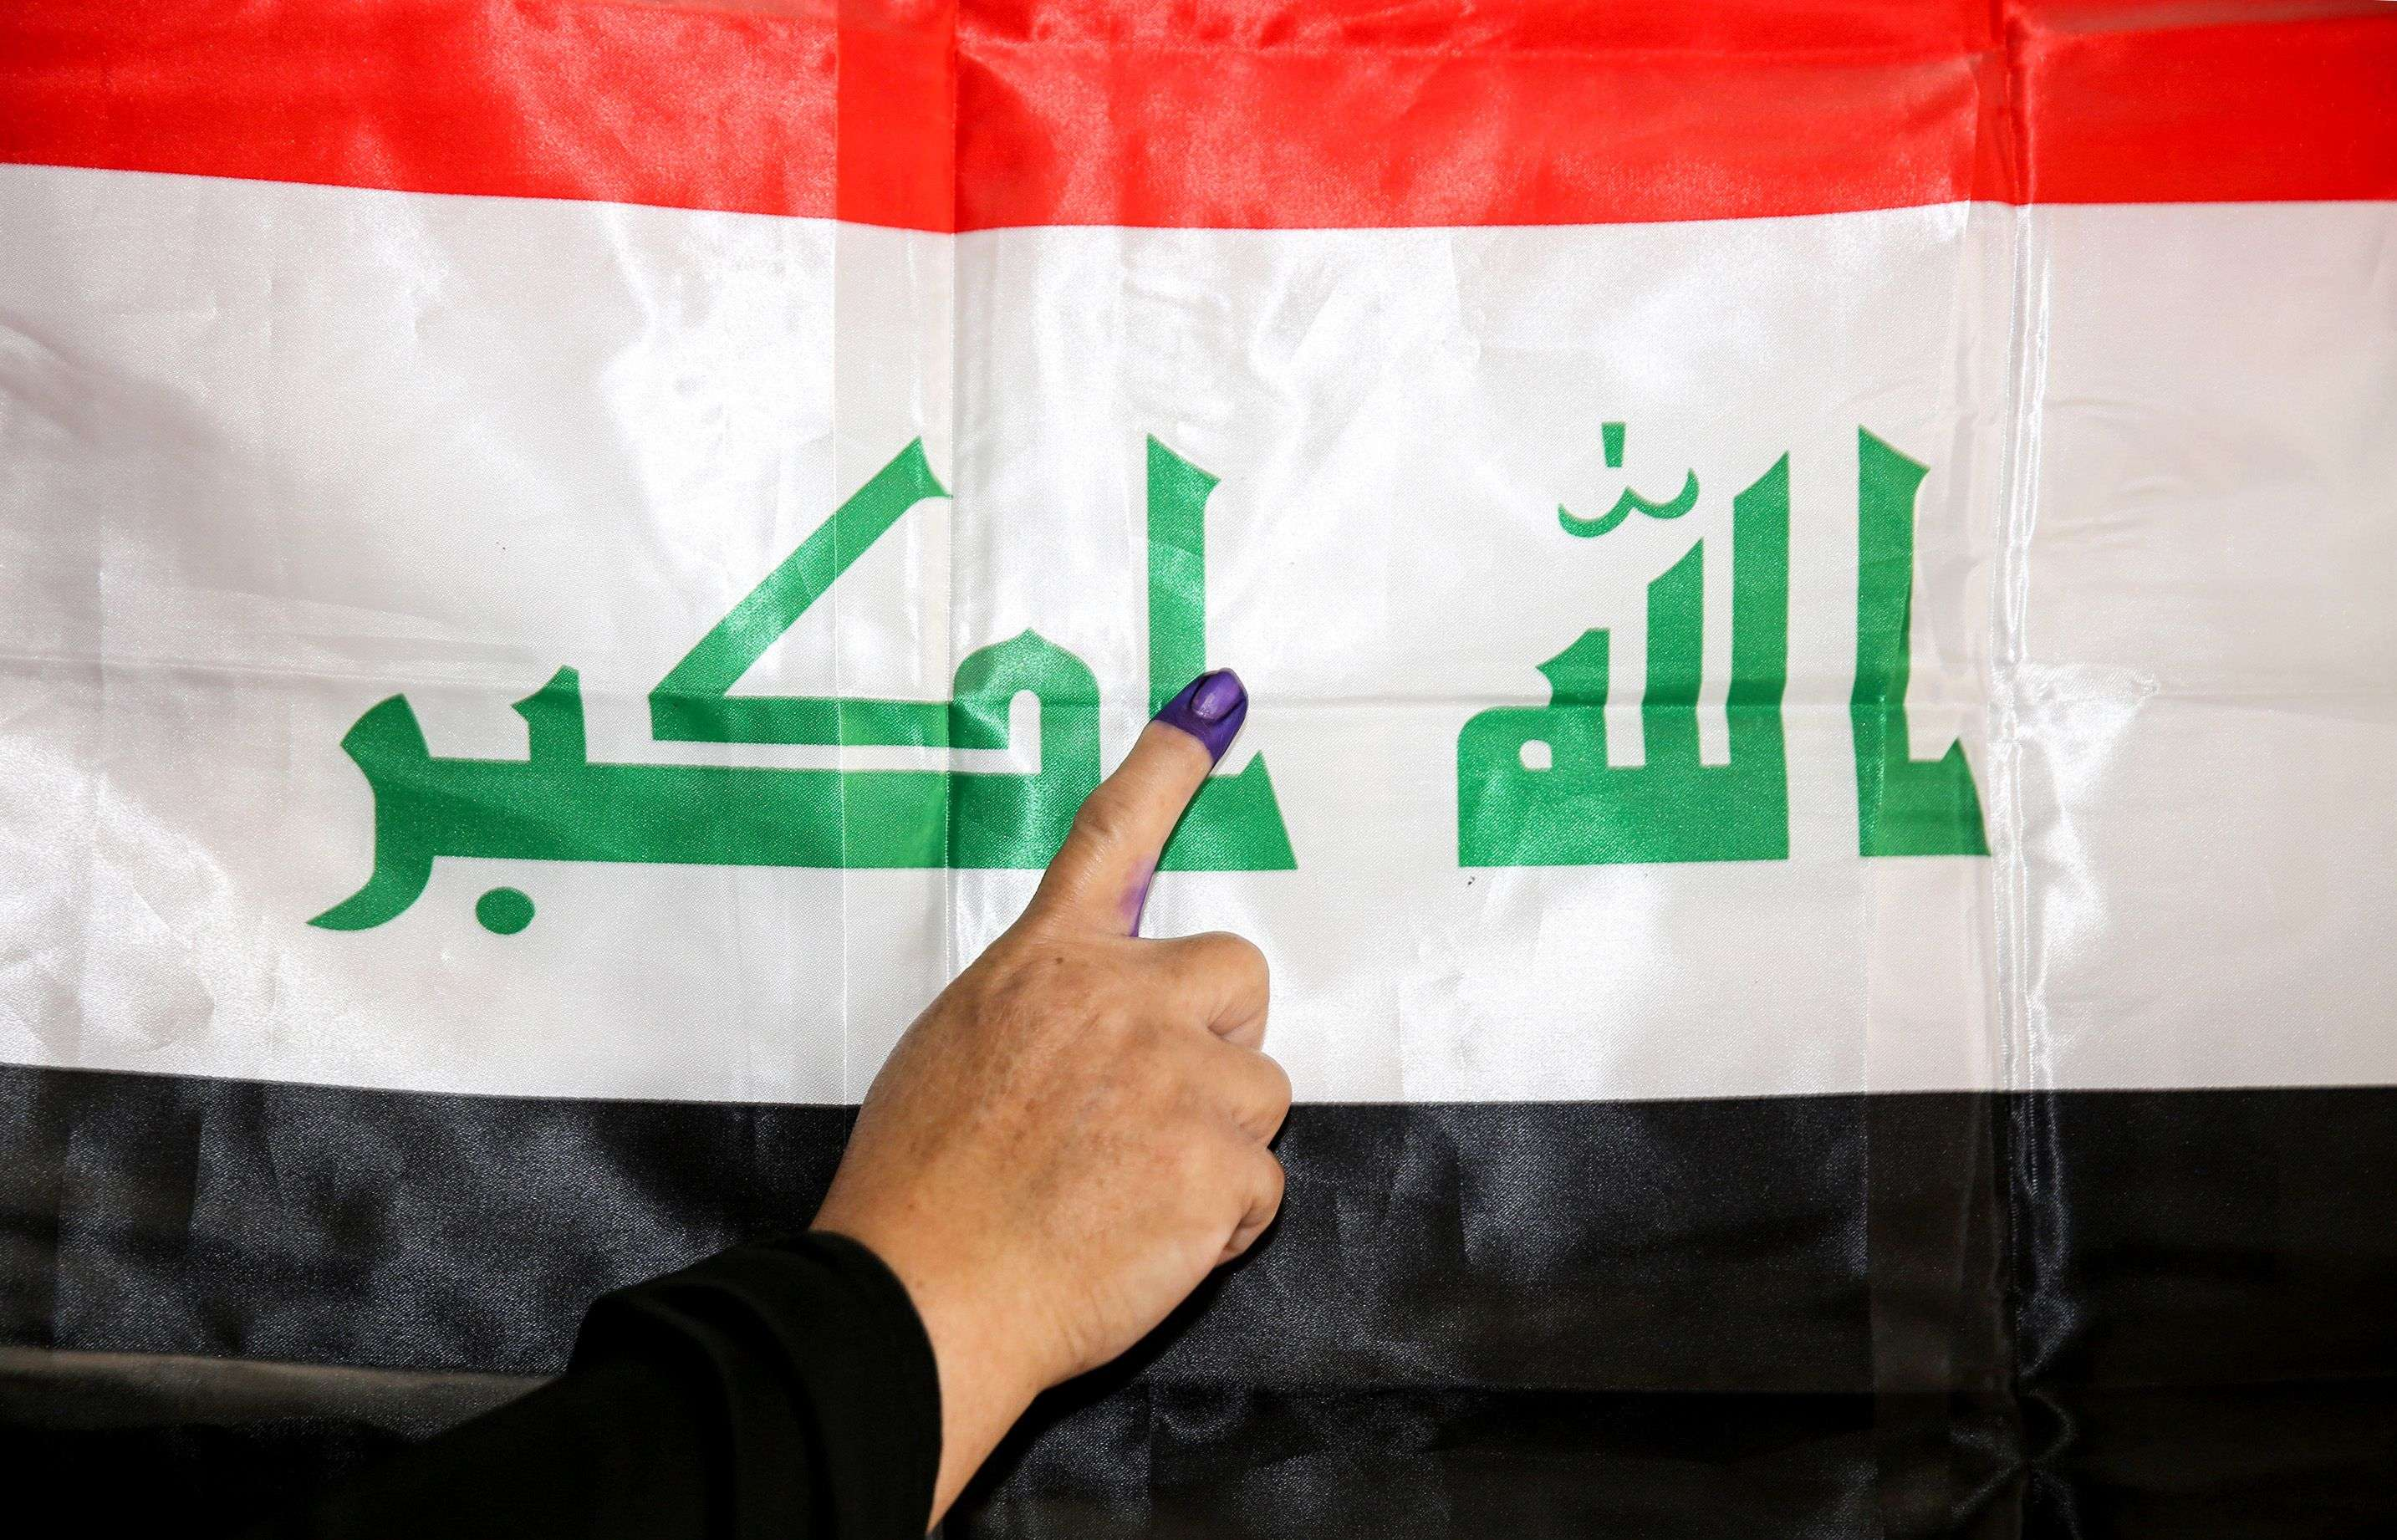 An Iraqi woman shows her ink-stained index finger before a national flag after having cast her vote in the country's parliamentary election, in the capital Baghdad's Karrada district on May 12. (AFP)